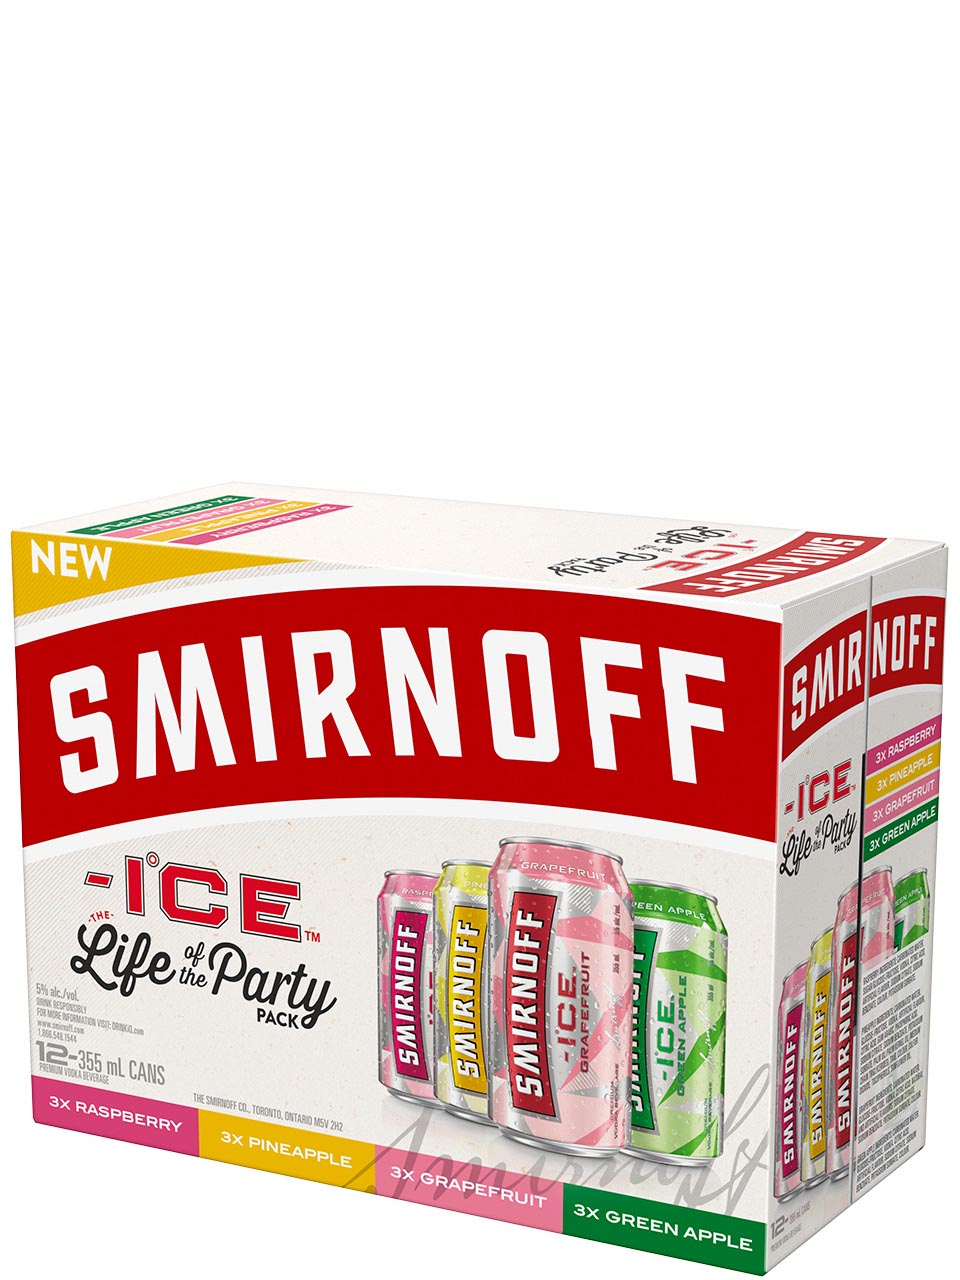 Smirnoff Ice Flavors Party Pack 12 Pack Cans